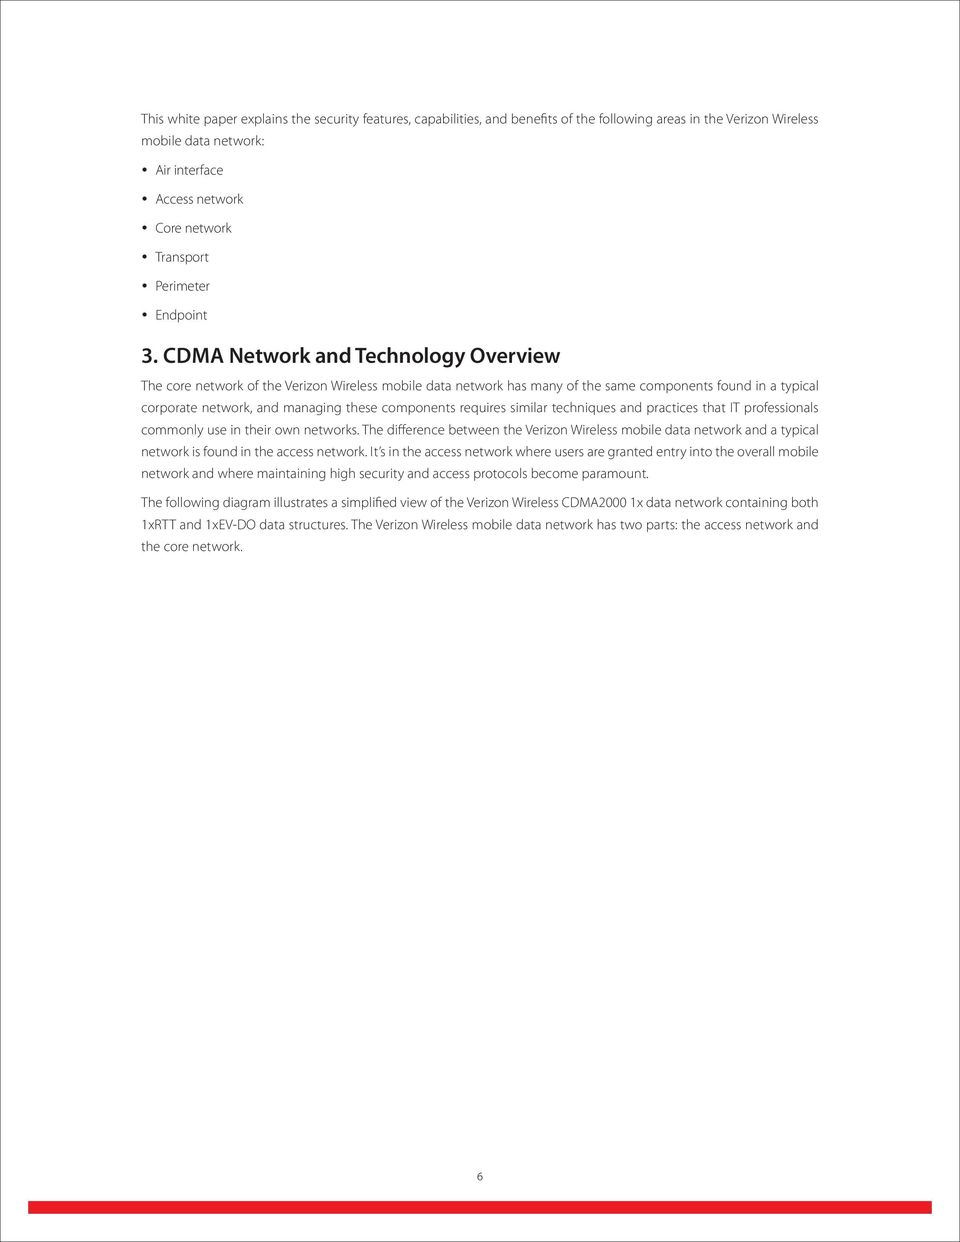 Cdma Network and Technology Overview The core network of the Verizon Wireless mobile data network has many of the same components found in a typical corporate network, and managing these components